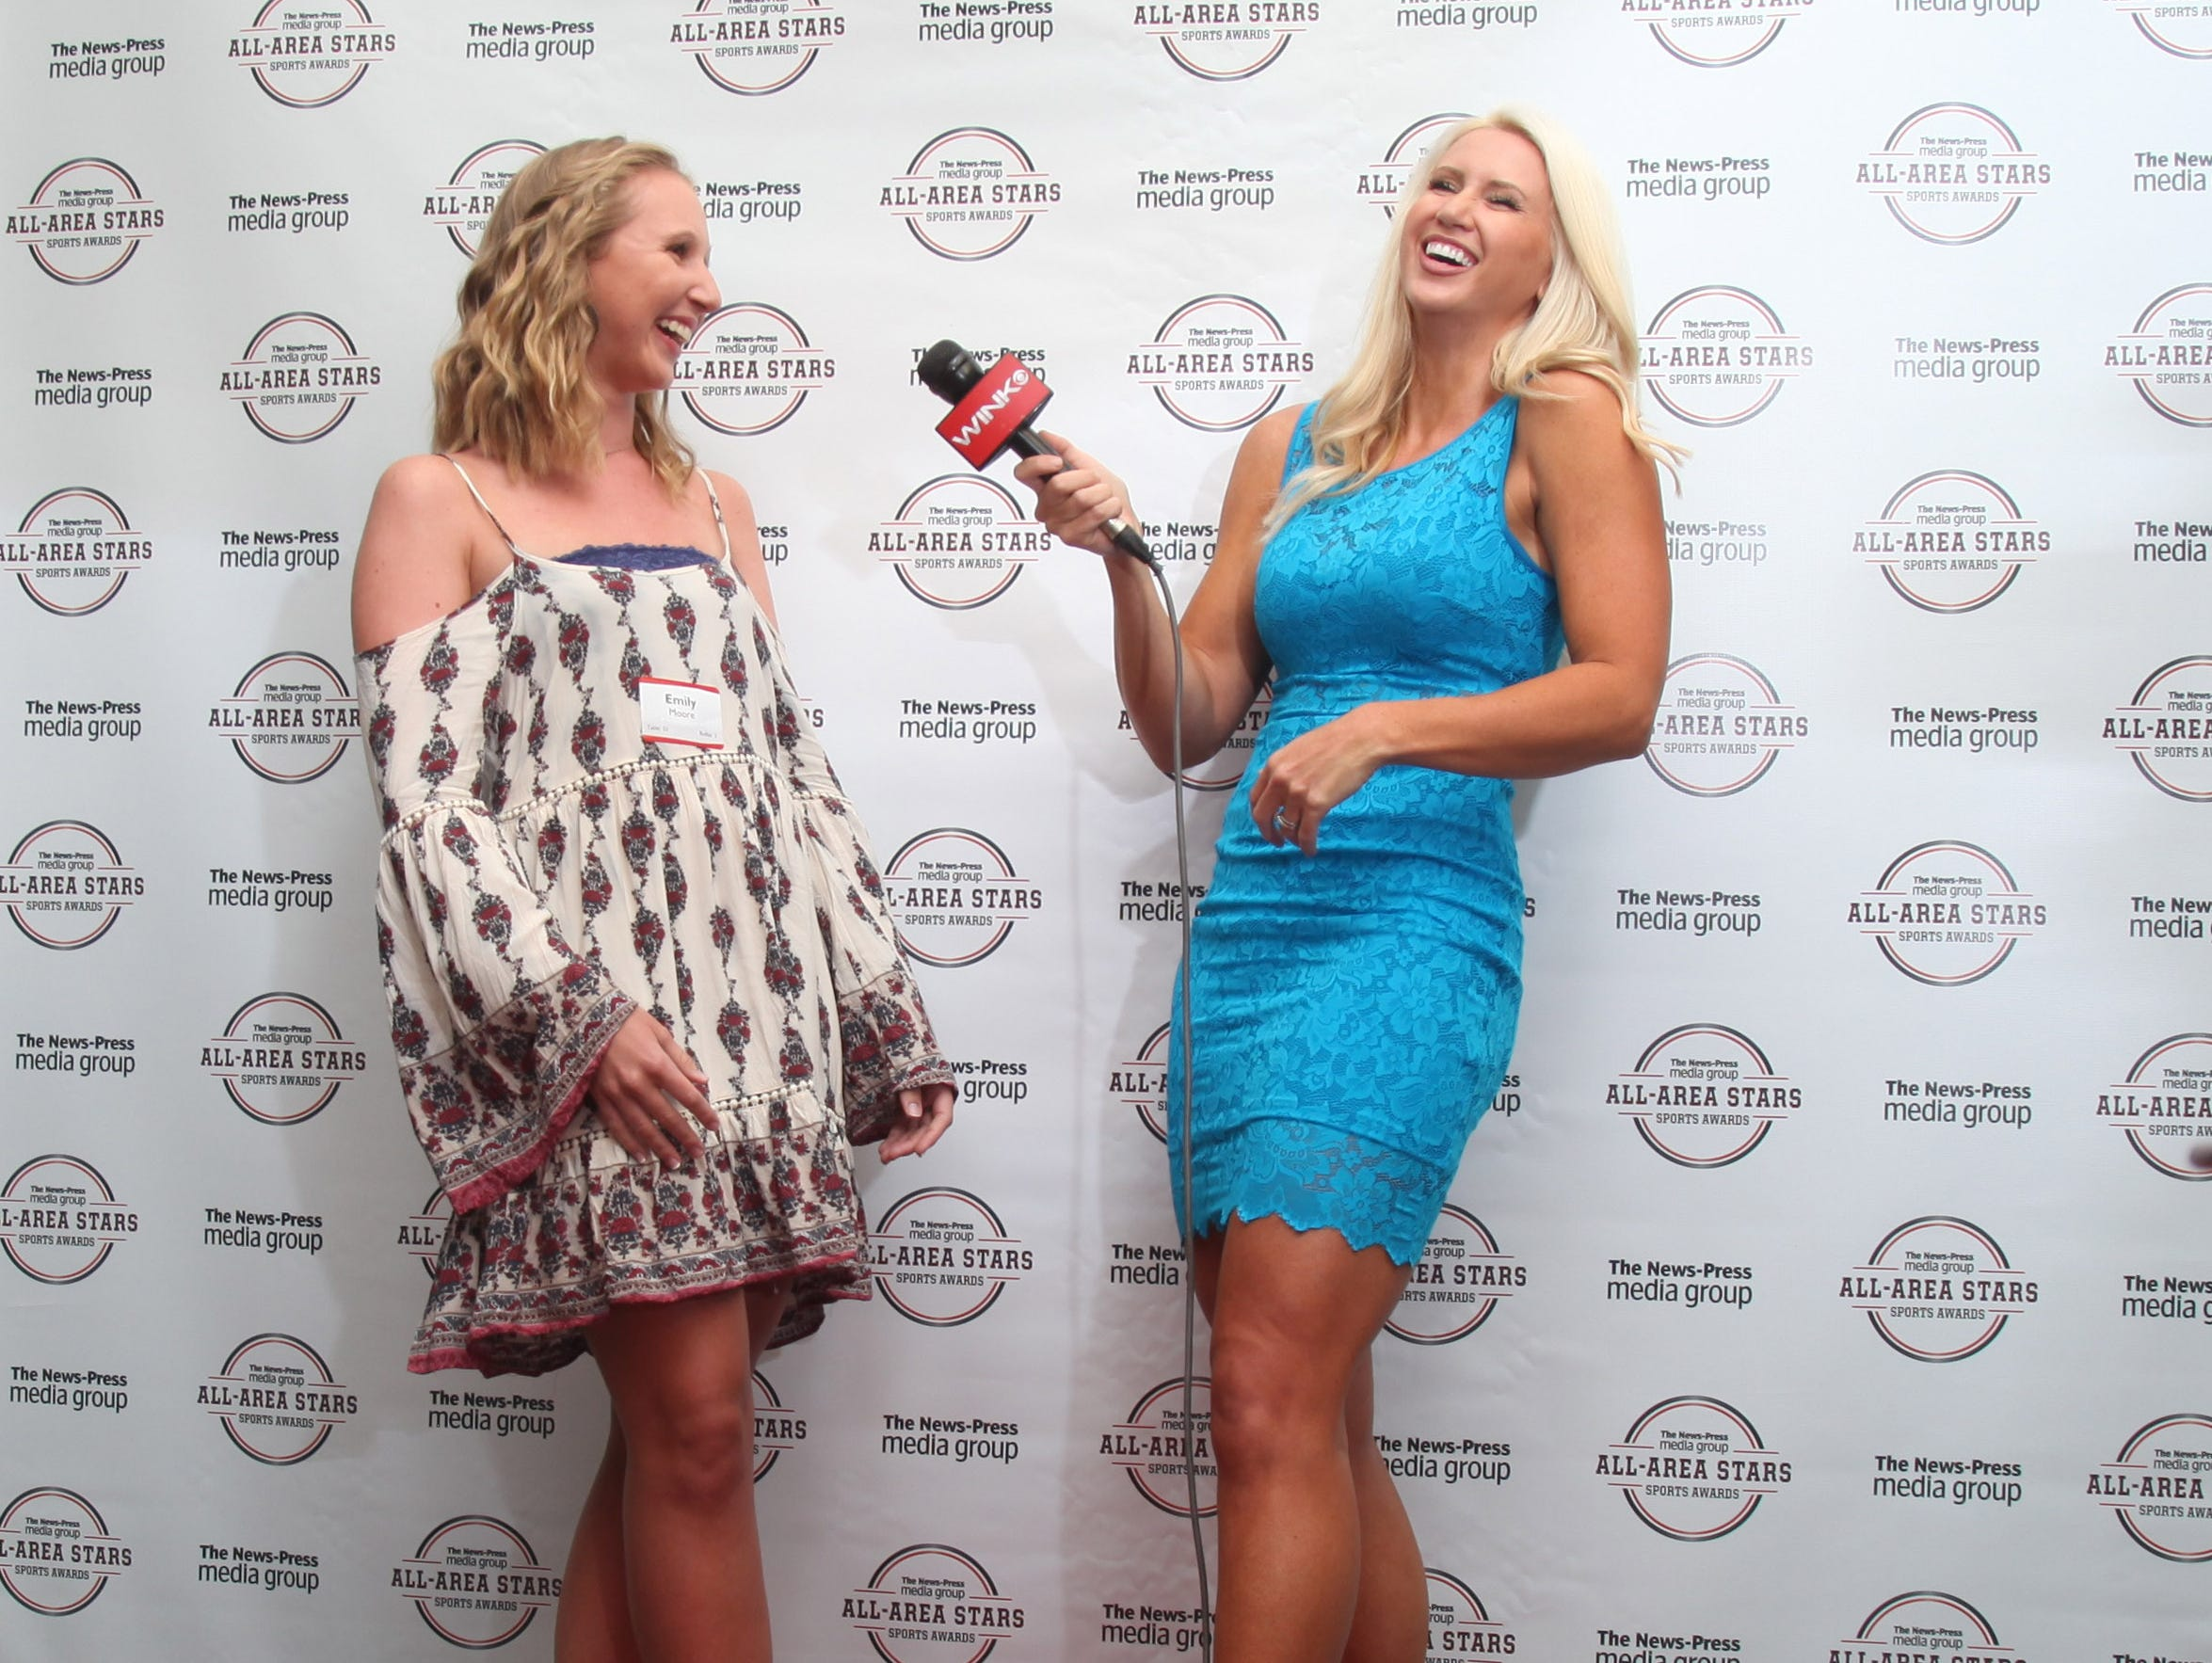 Emily Moore, of Evangelical Christian School, shares a laugh with Chelsa Messinger, of WINK Sports, during an interview on the red carpet at the All-Area All Stars Banquet at Germain Arena on Tuesday night.